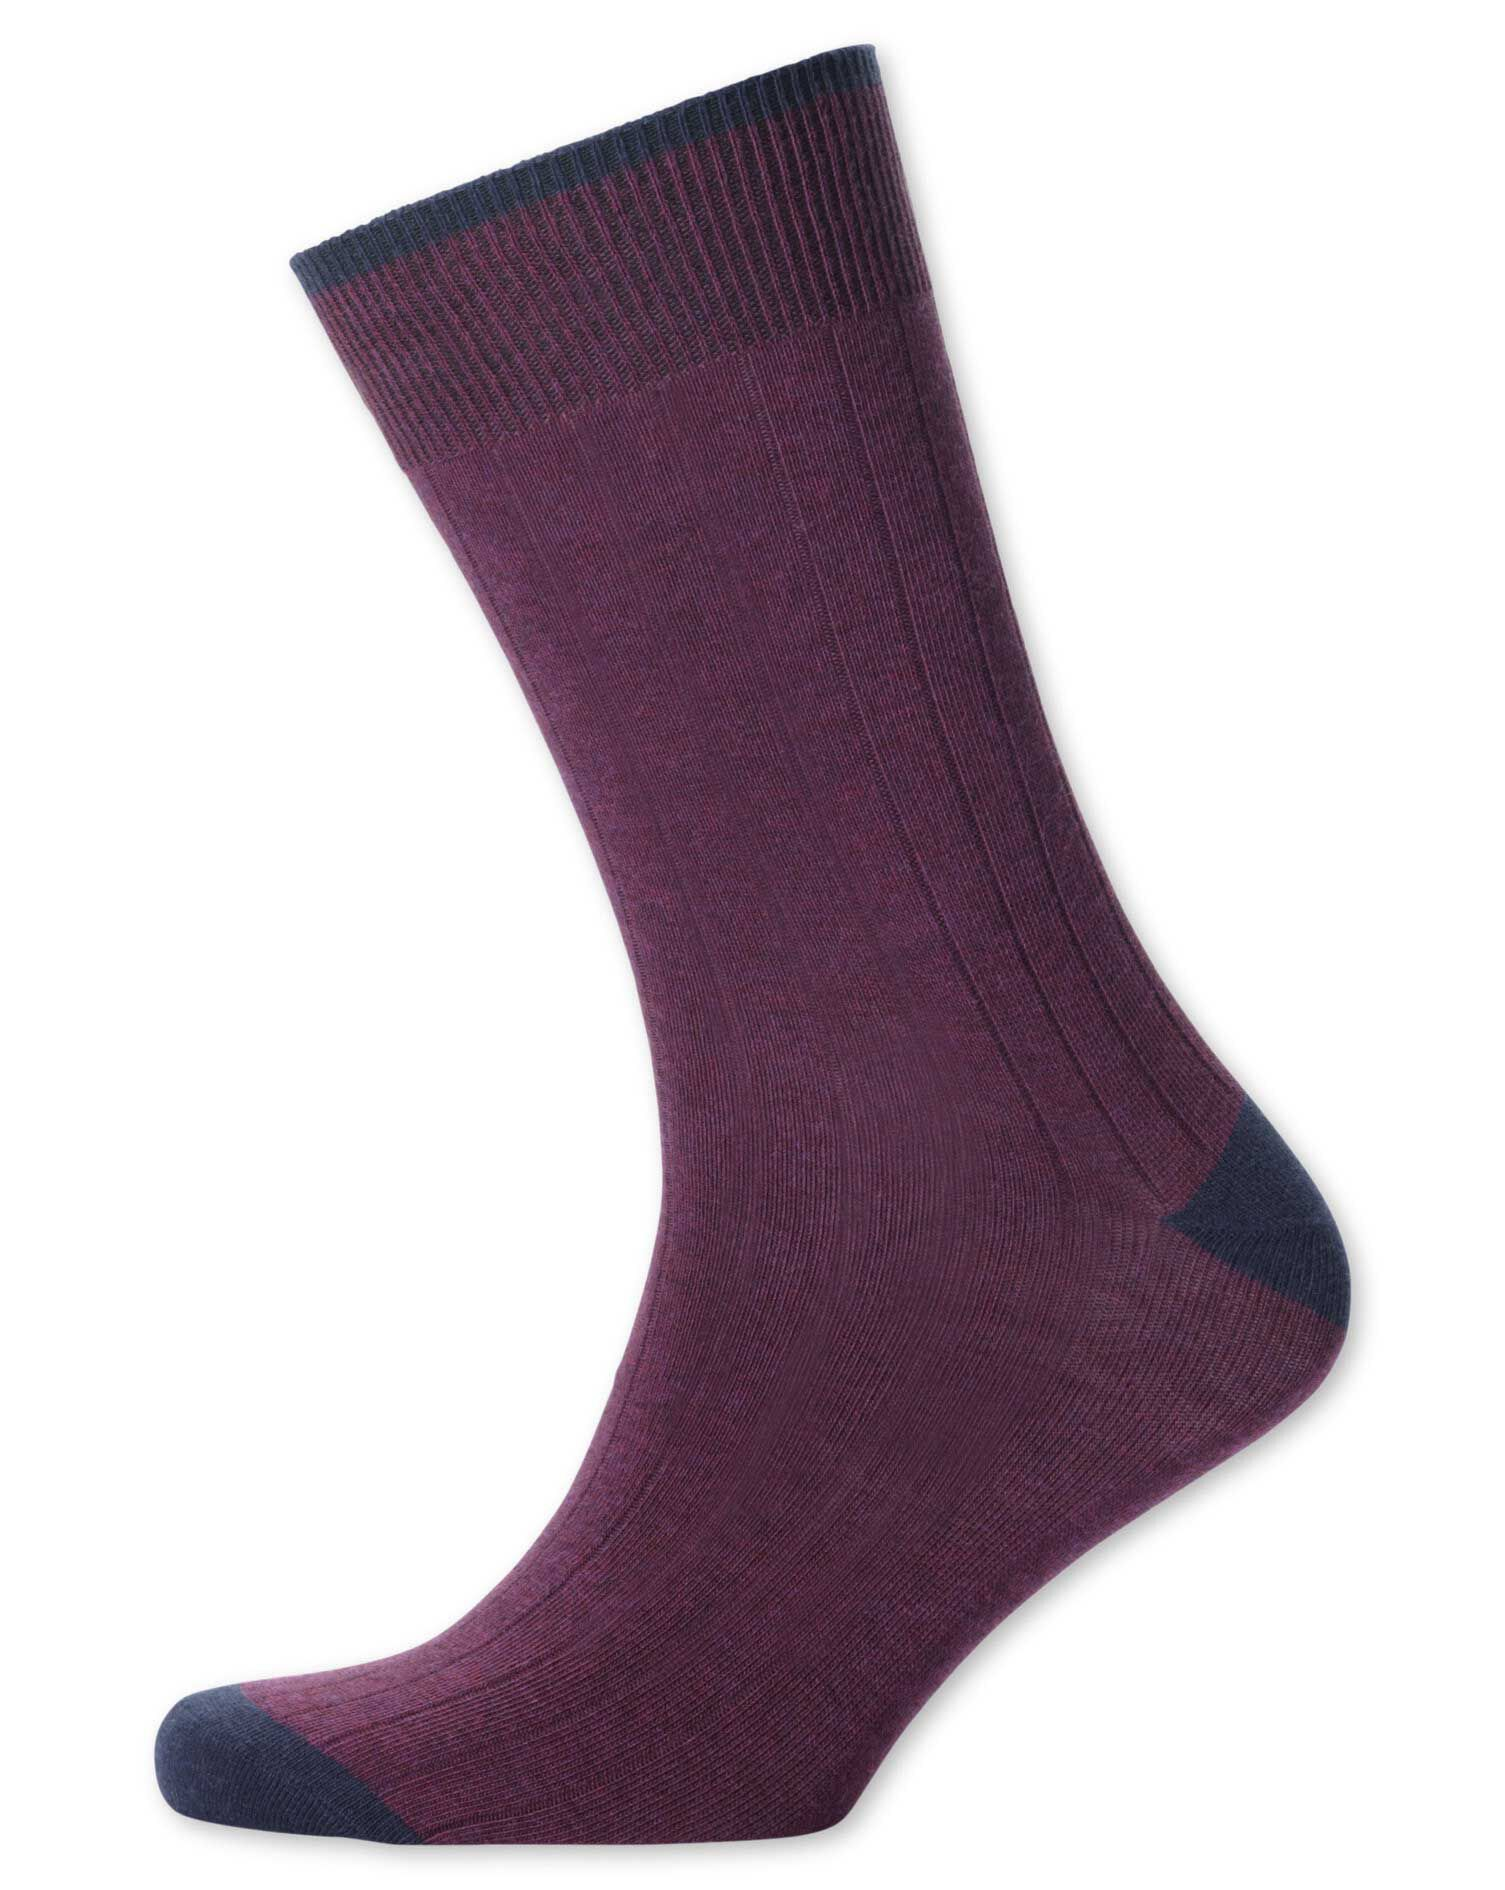 Berry Ribbed Socks Size Large by Charles Tyrwhitt